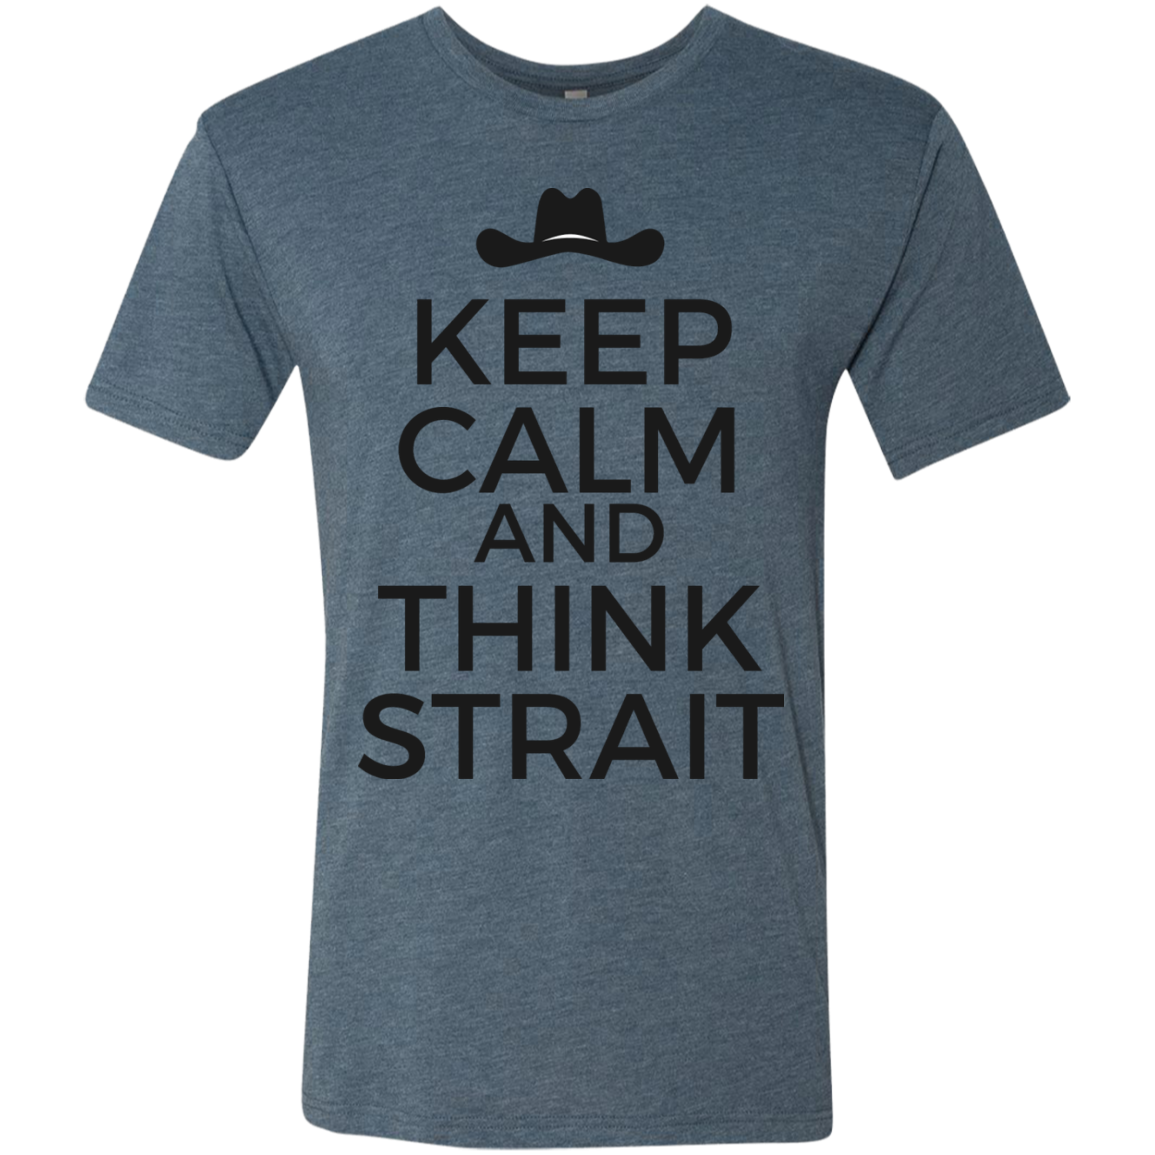 Think Strait - Men's Tri-Blend Tee - Monday Monday